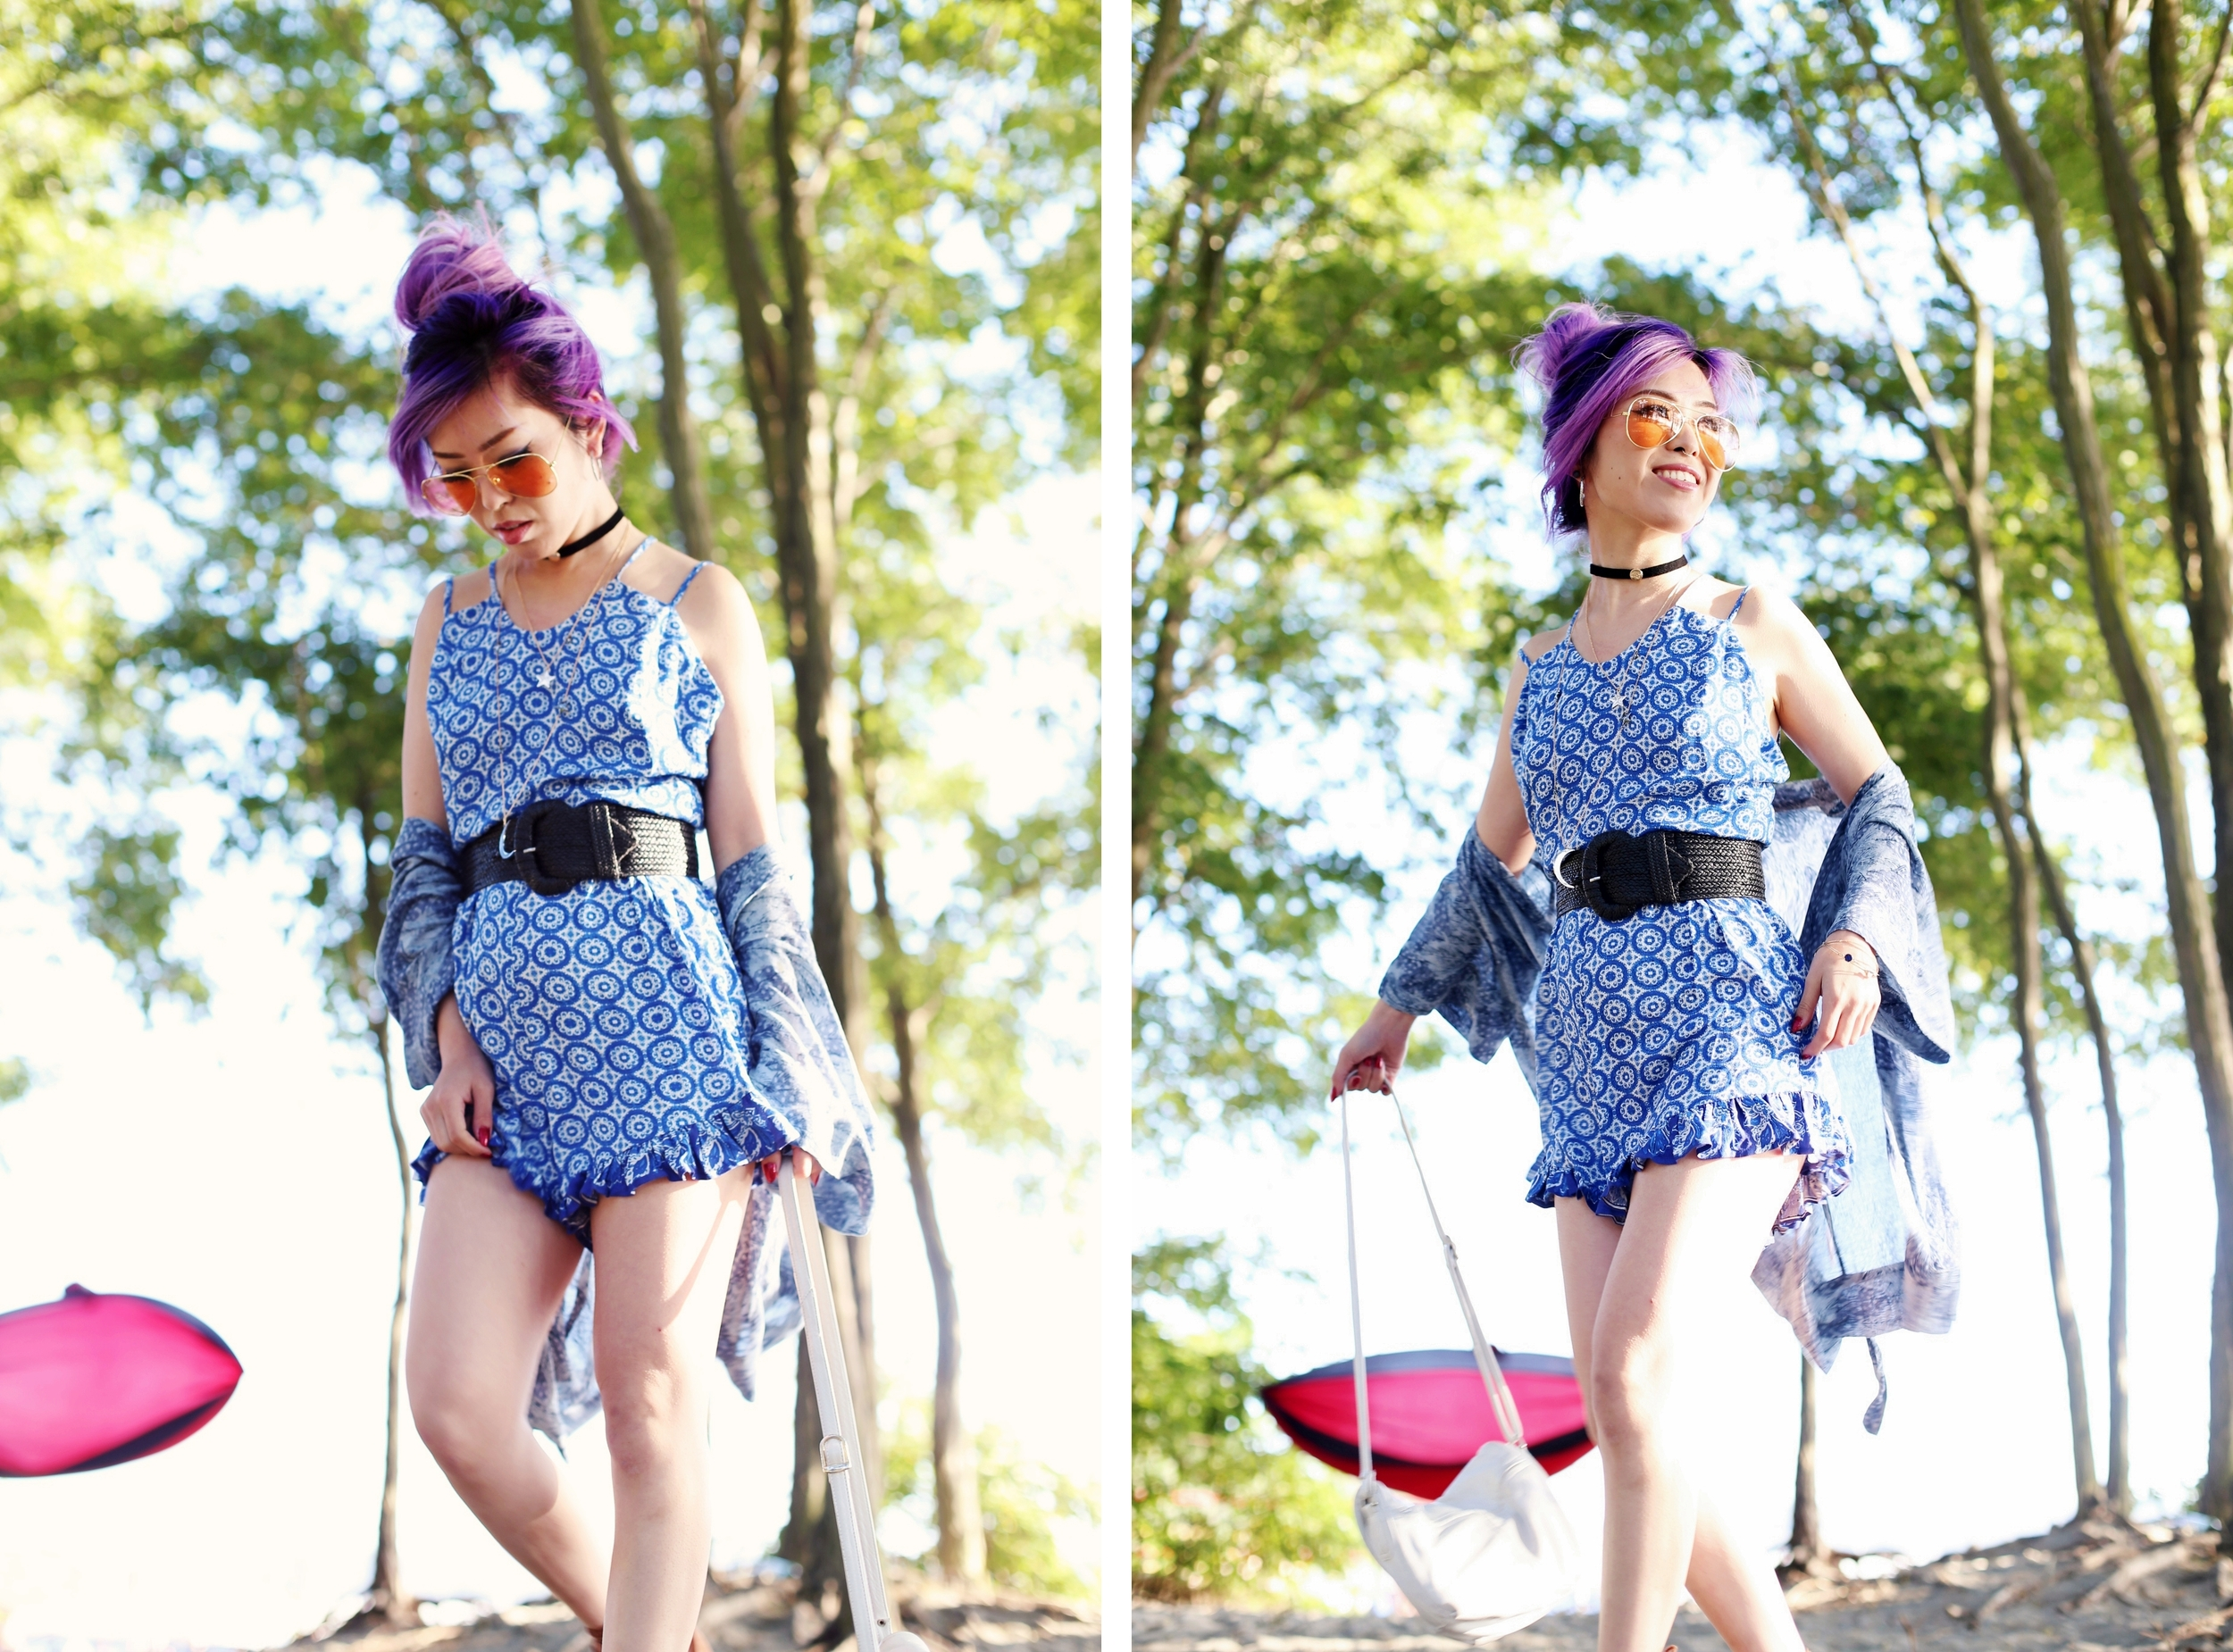 Target x Made by MINKPINK Medallion Ruffle Romper_Aritzia Kimono Cardigan_ZARA choker & necklaces_H&M Belt_Qupid booties via Charlotte Russe_Rayban Sunglasses_Aikas Love Closet_Seattle Fashion Blogger from Japan_Purple Hair